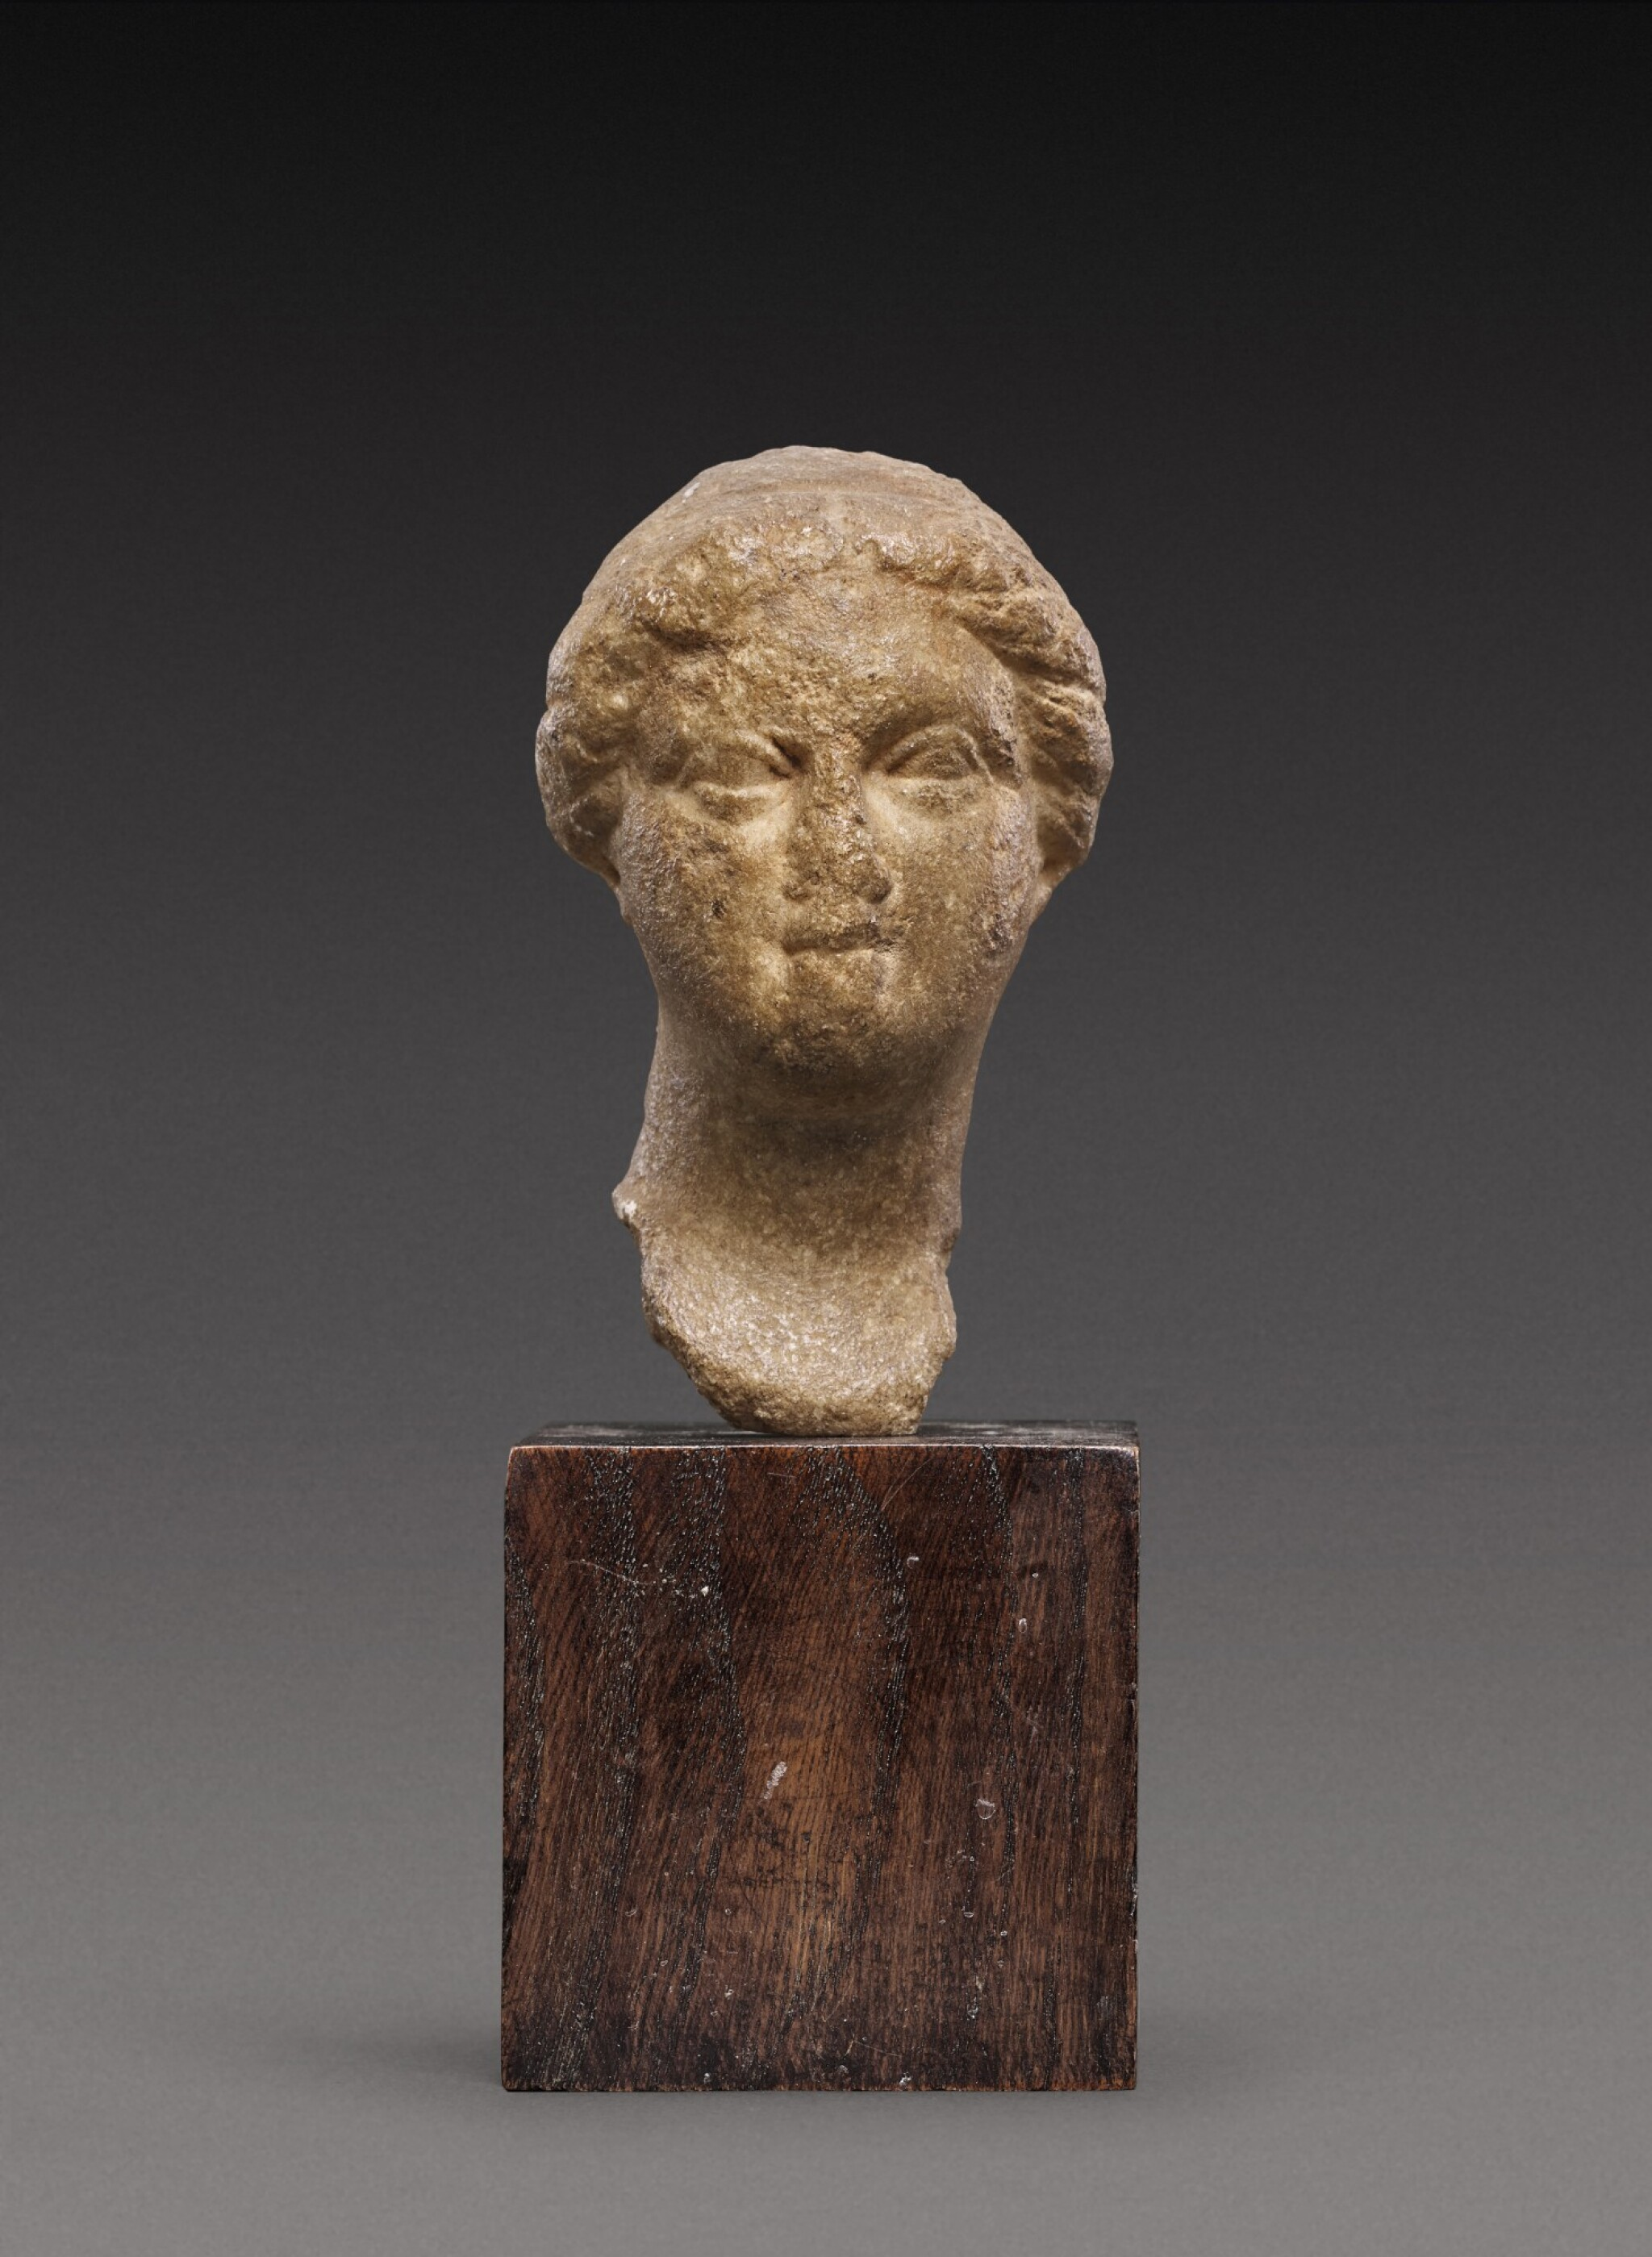 View 1 of Lot 101. A Hellenistic Marble Head of a Woman or Goddess, 2nd/1st Century B.C..